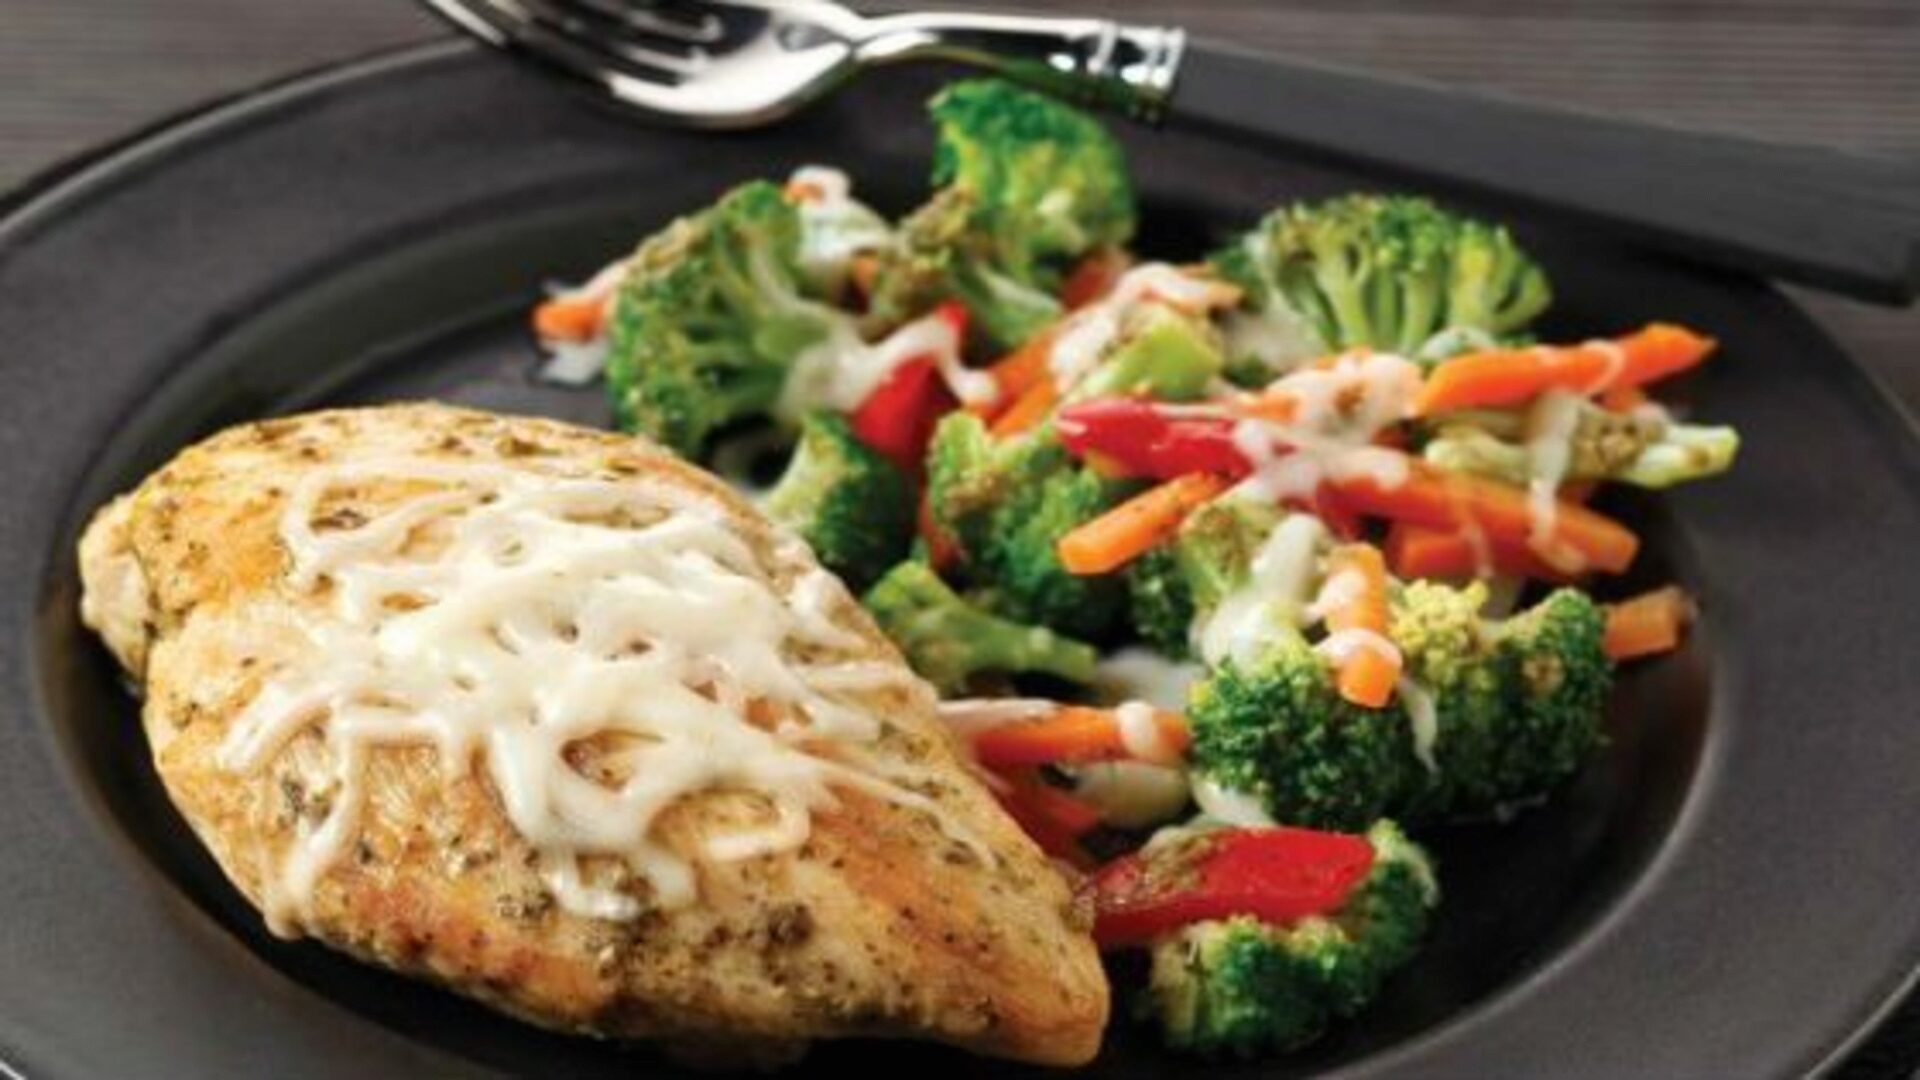 Chicken is good with greens and vegetables.